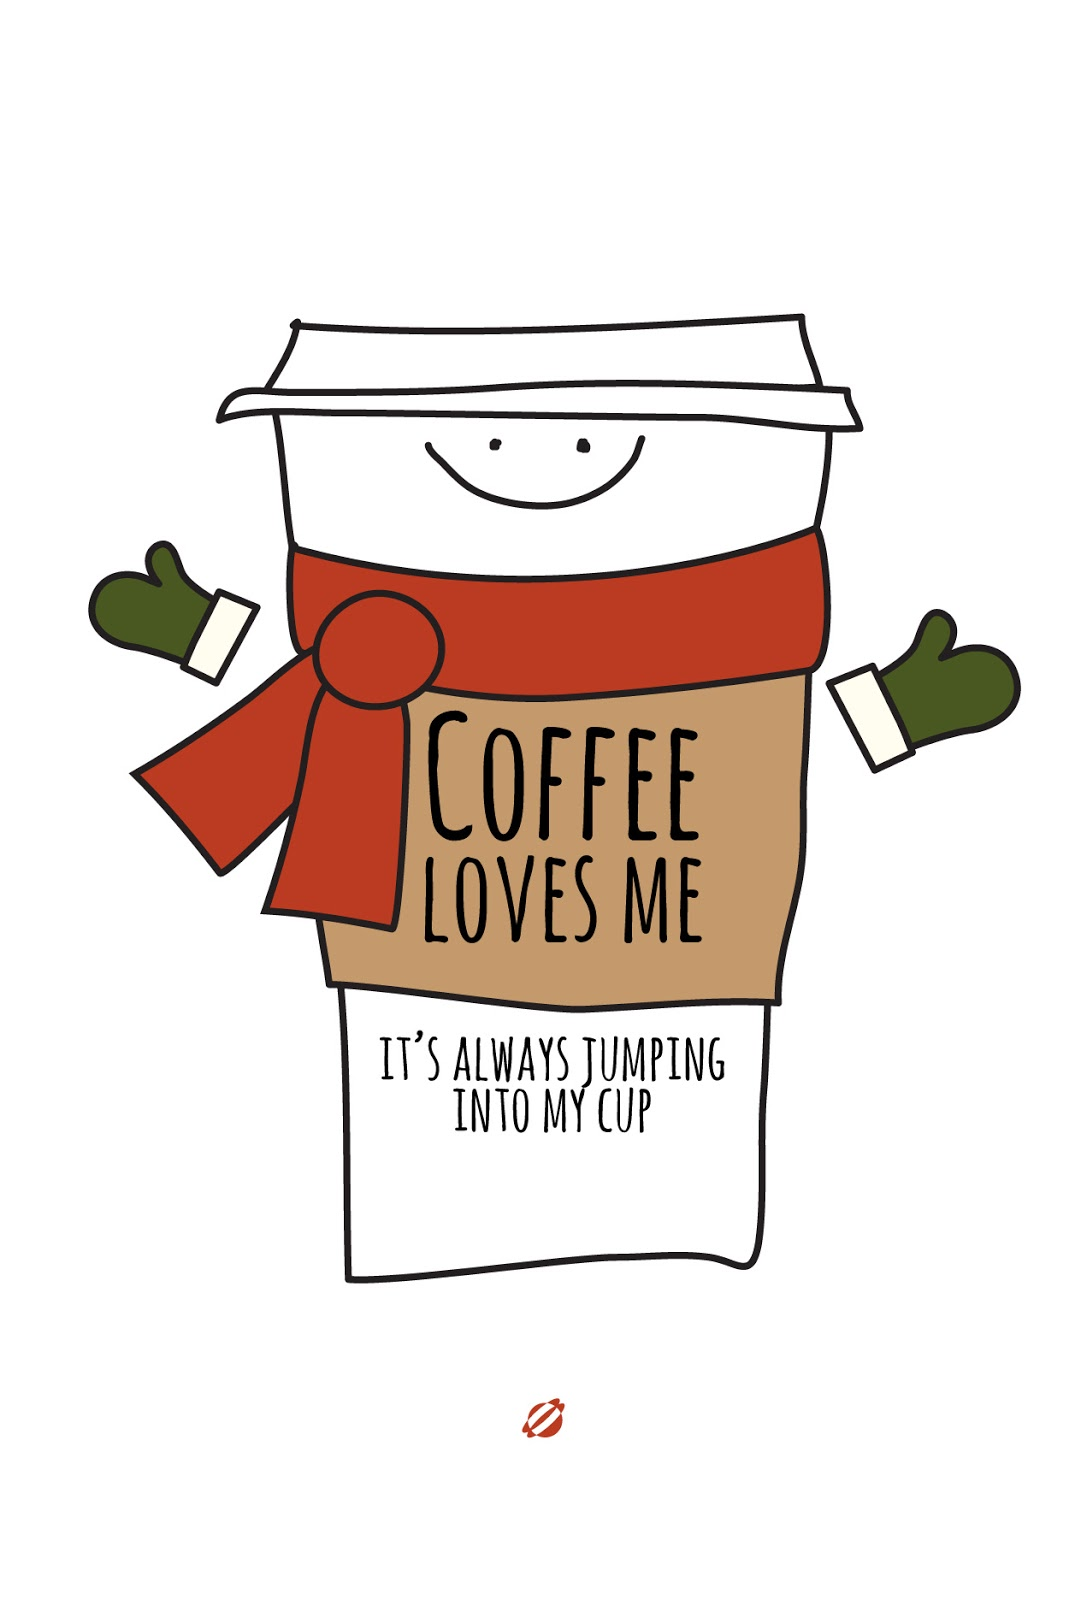 LostBumblebee 2013 Free Printable Coffee LOVES ME!